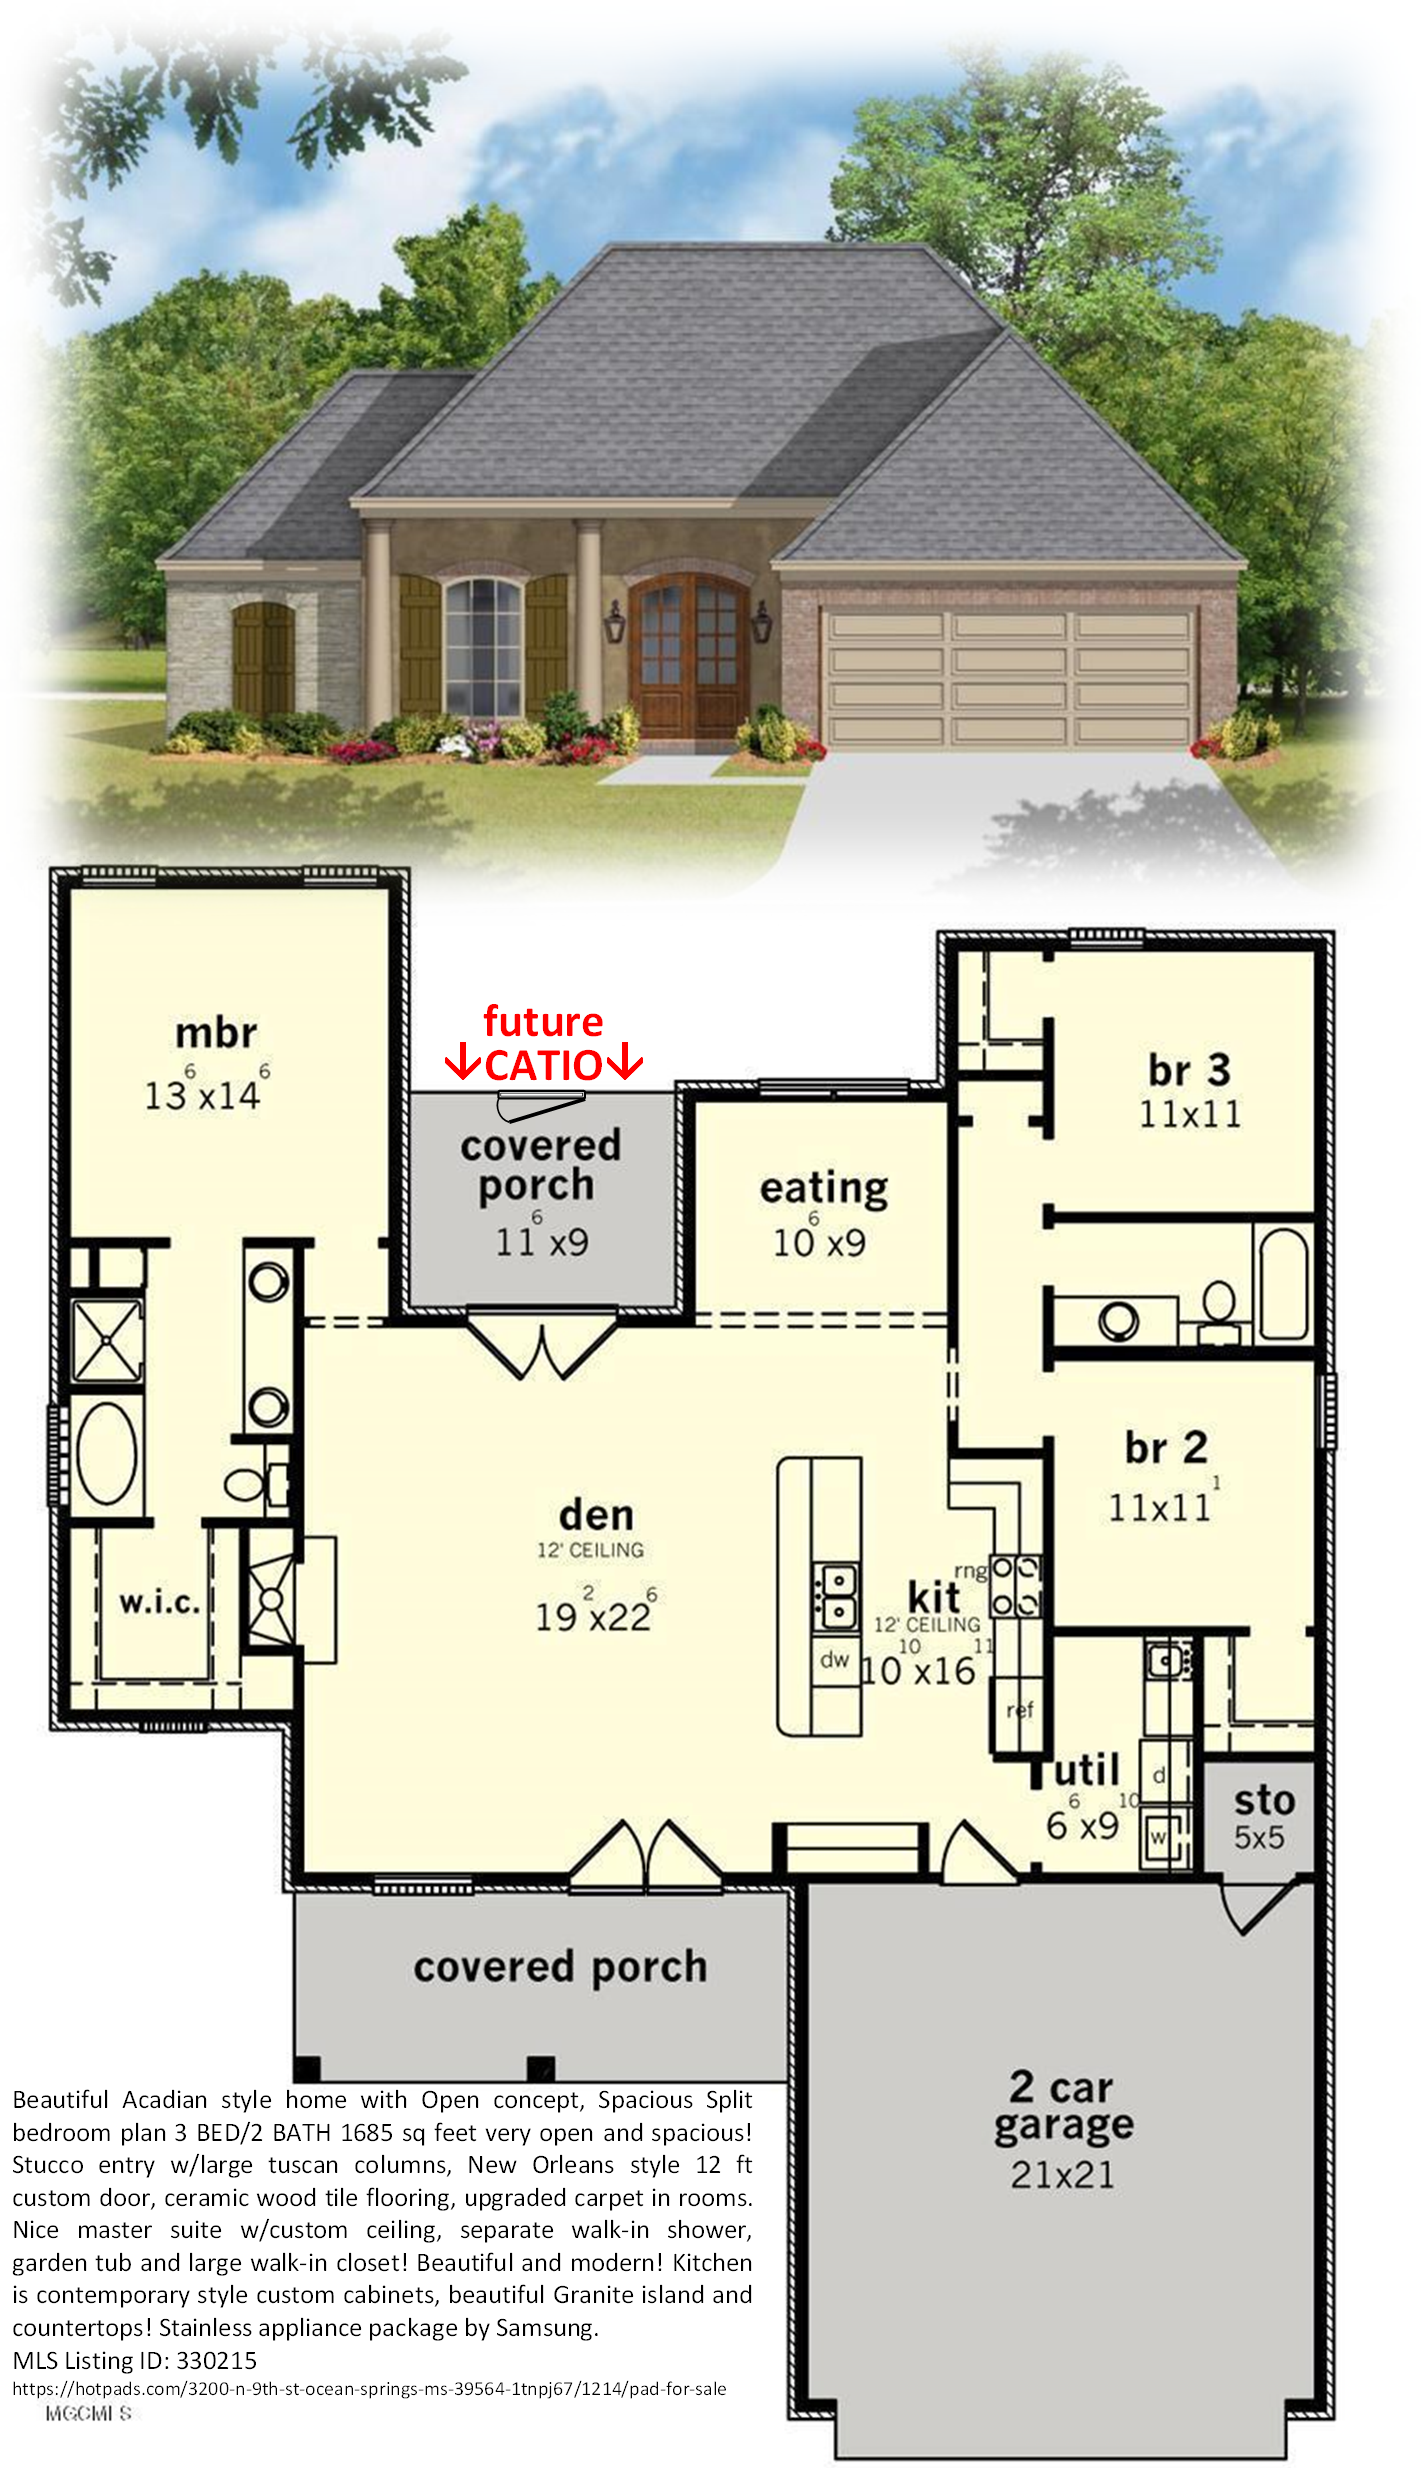 Pin By Susan Gylfe On House Plans House Blueprints House Plans Small House Plans